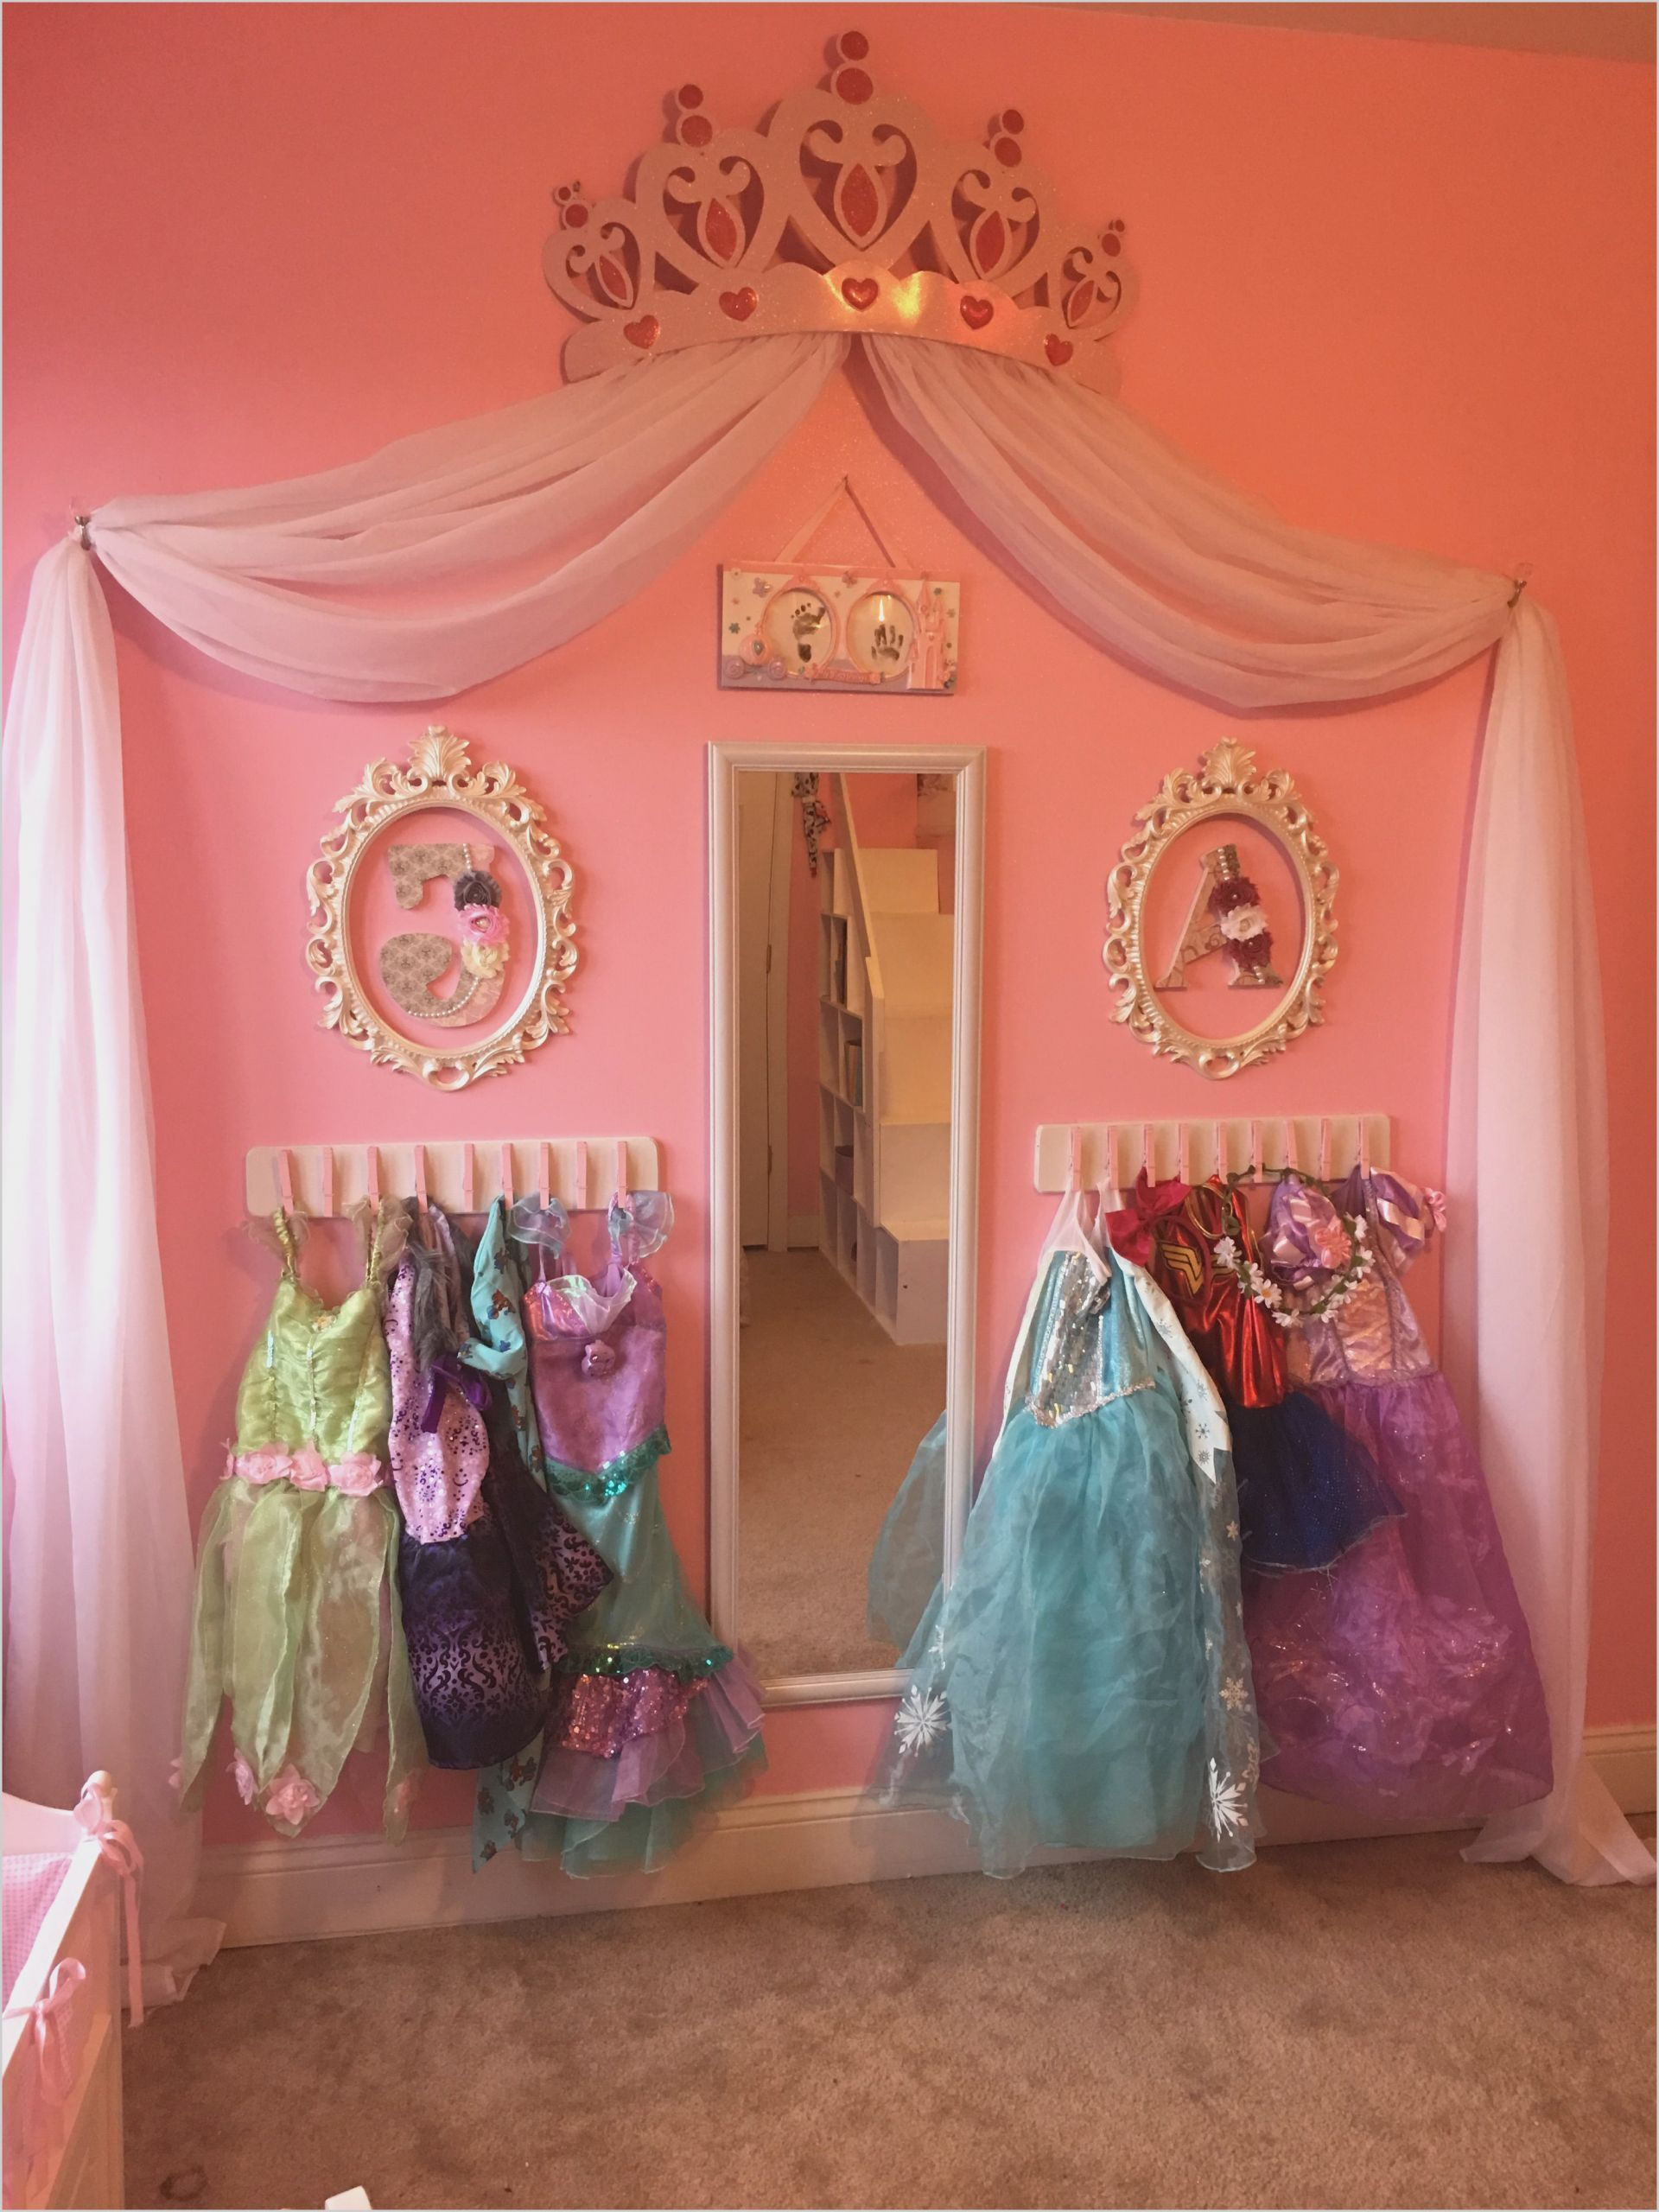 Disney Princess Bedroom Ideas Uk Bedroom Disney Ideas Princess Prinsessenkamer Slaapkamers Voor Kleine Meisjes Speelkamer